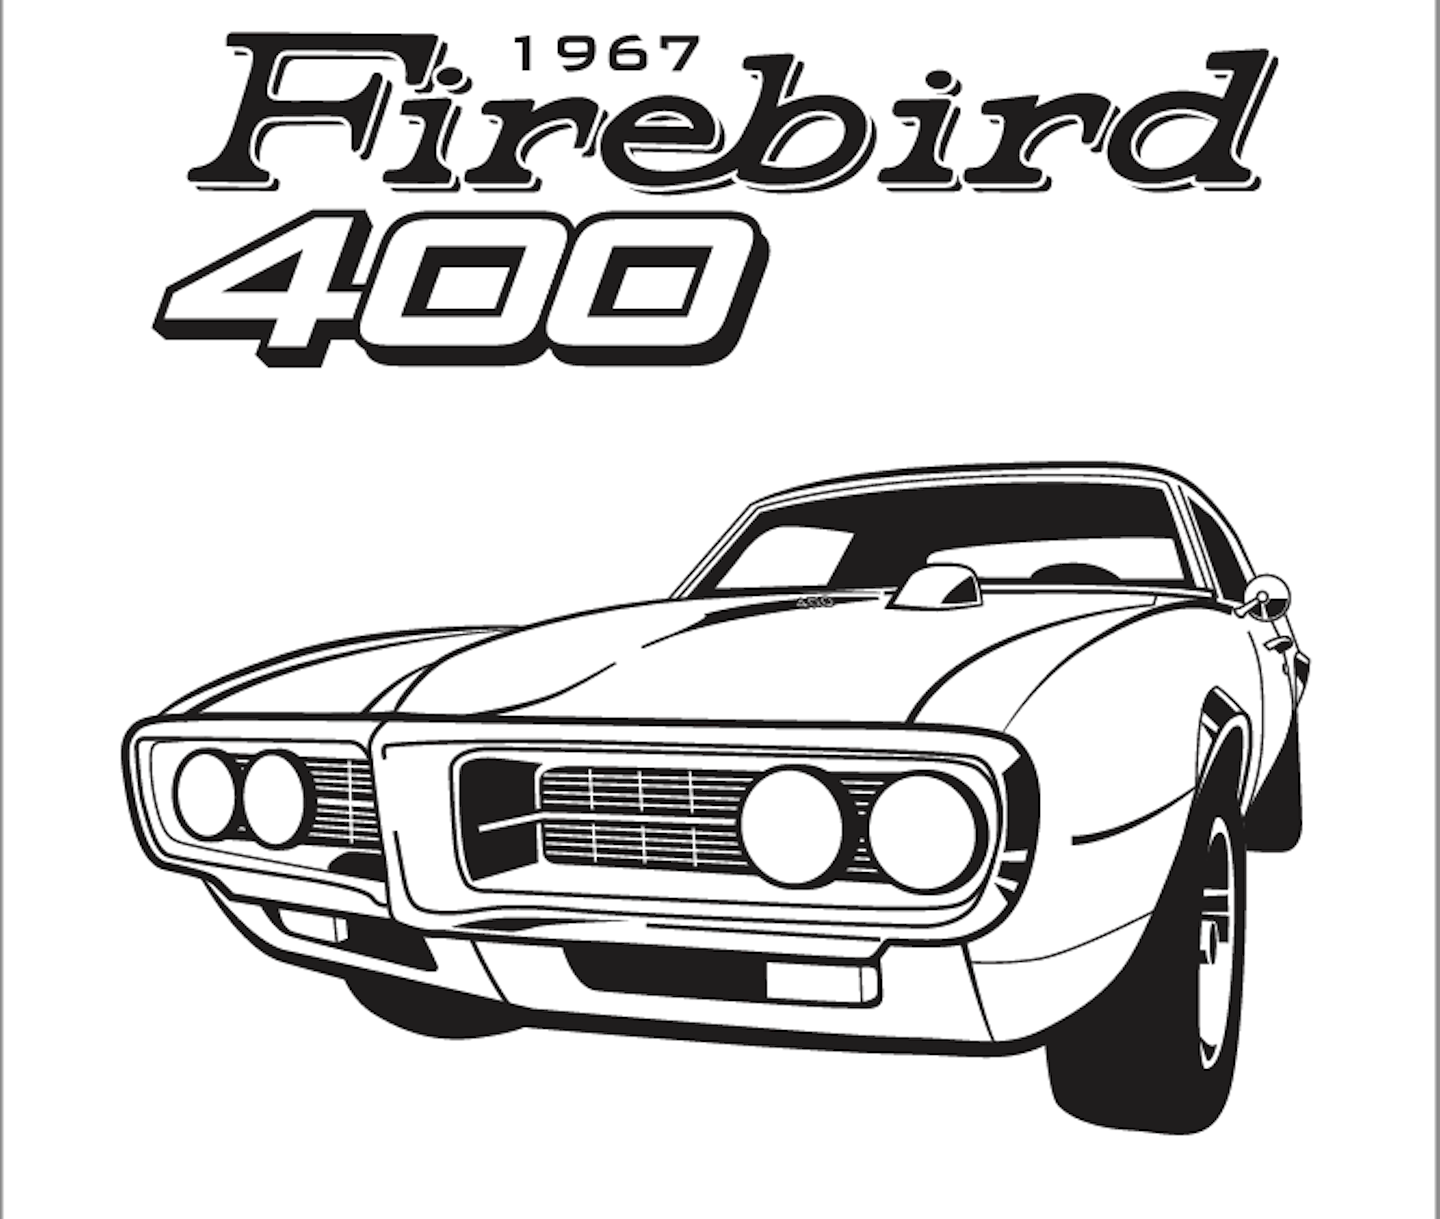 coloring pages cars top 25 free printable colorful cars coloring pages online cars coloring pages